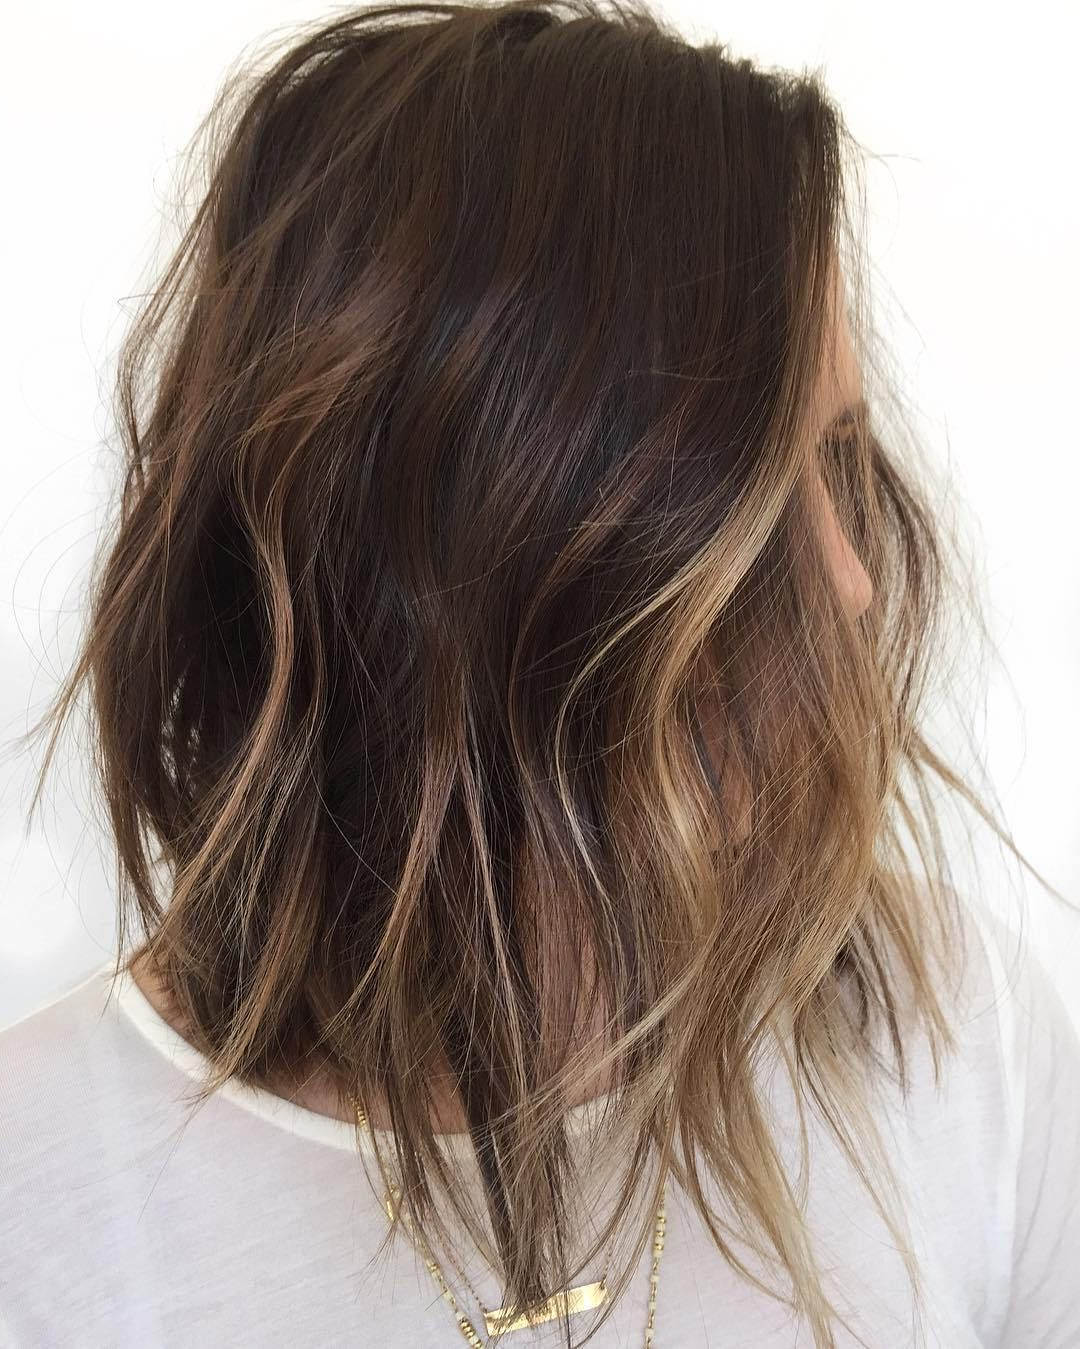 70 Flattering Balayage Hair Color Ideas For  (View 7 of 20)